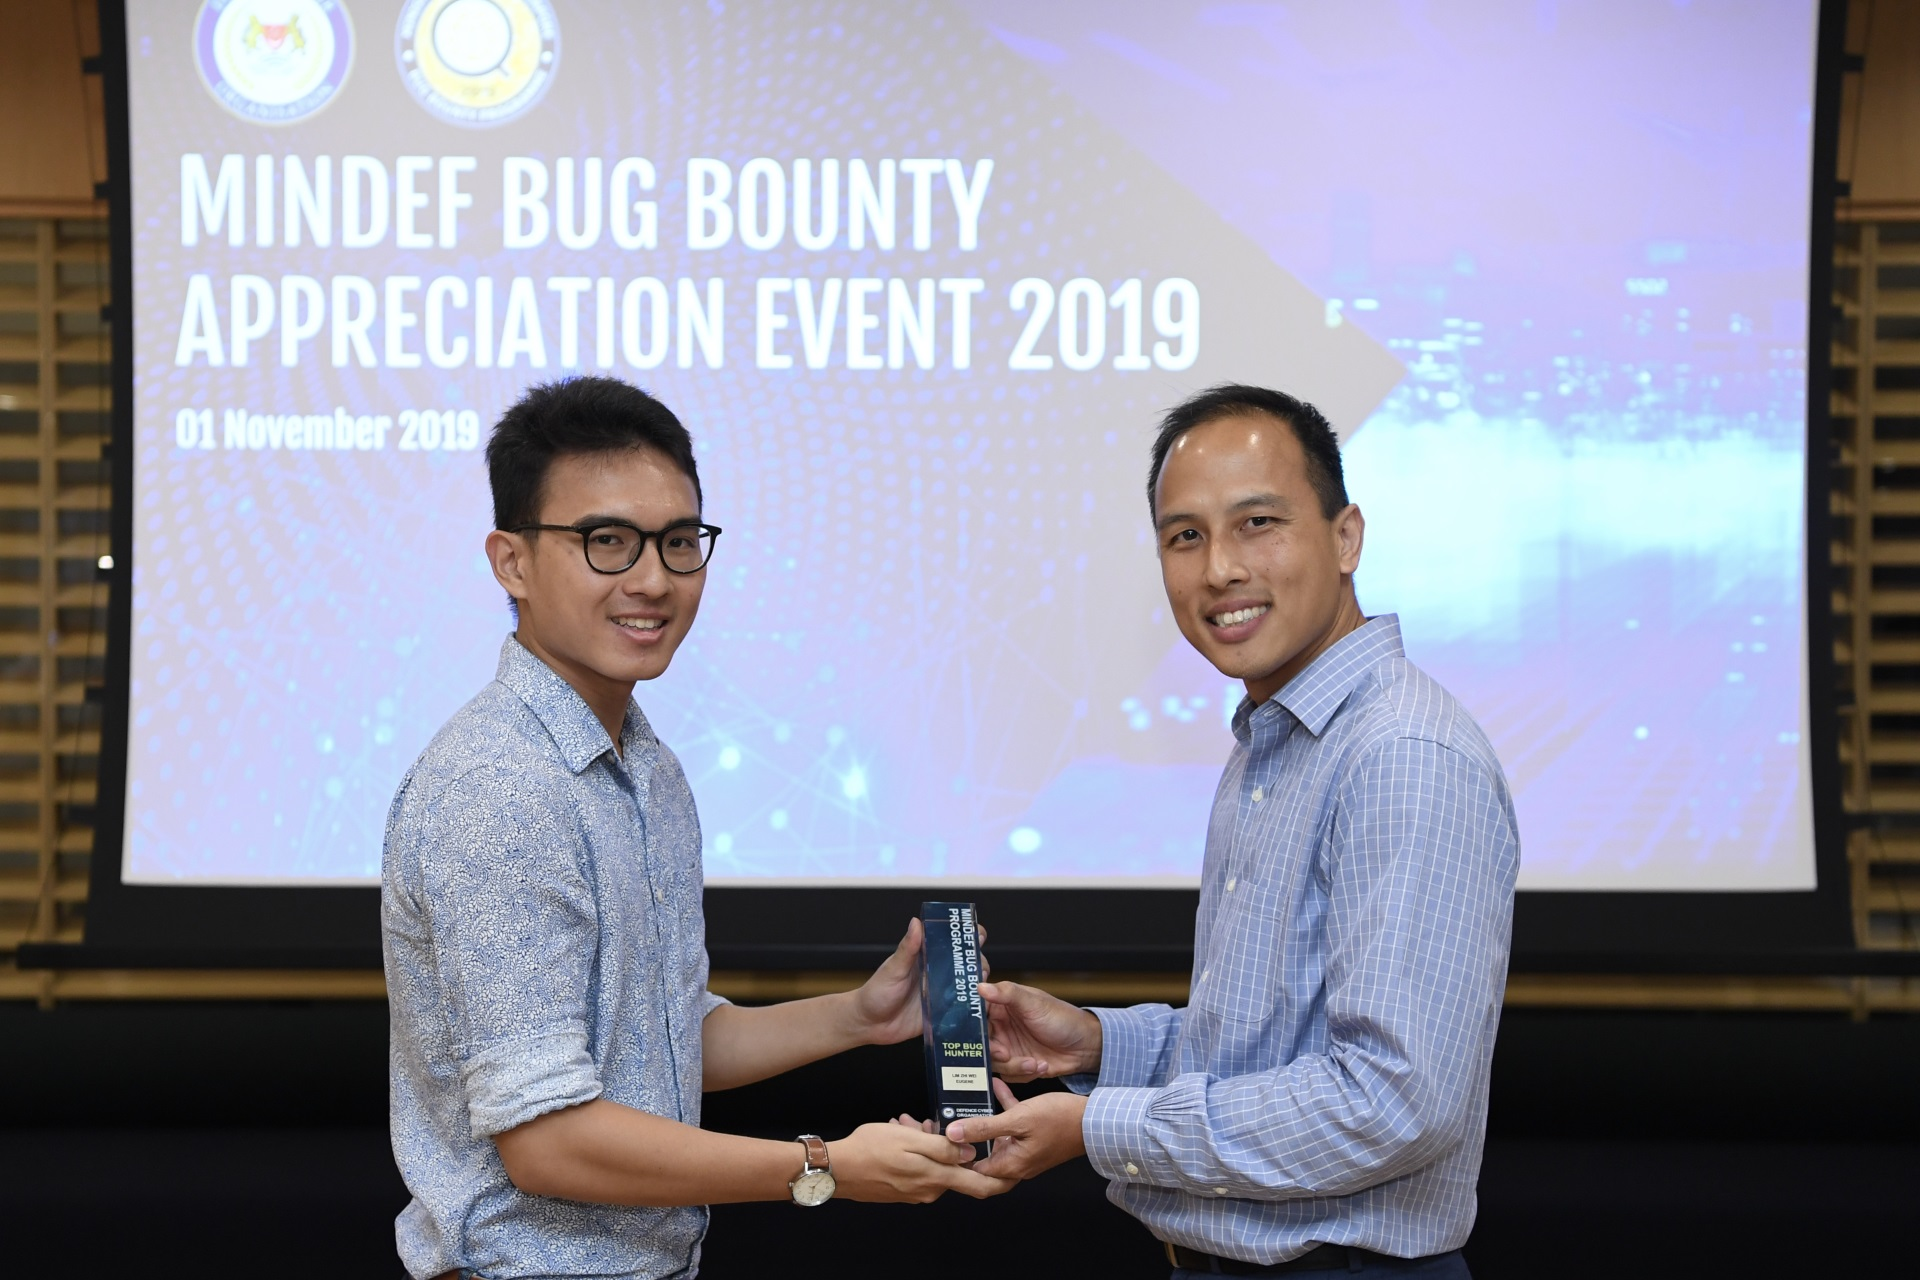 Defence Cyber Chief Brigadier-General (BG) Mark Tan presenting the Top Bug Hunter Award to Mr Eugene Lim at the Bug Bounty Appreciation Event held earlier today.